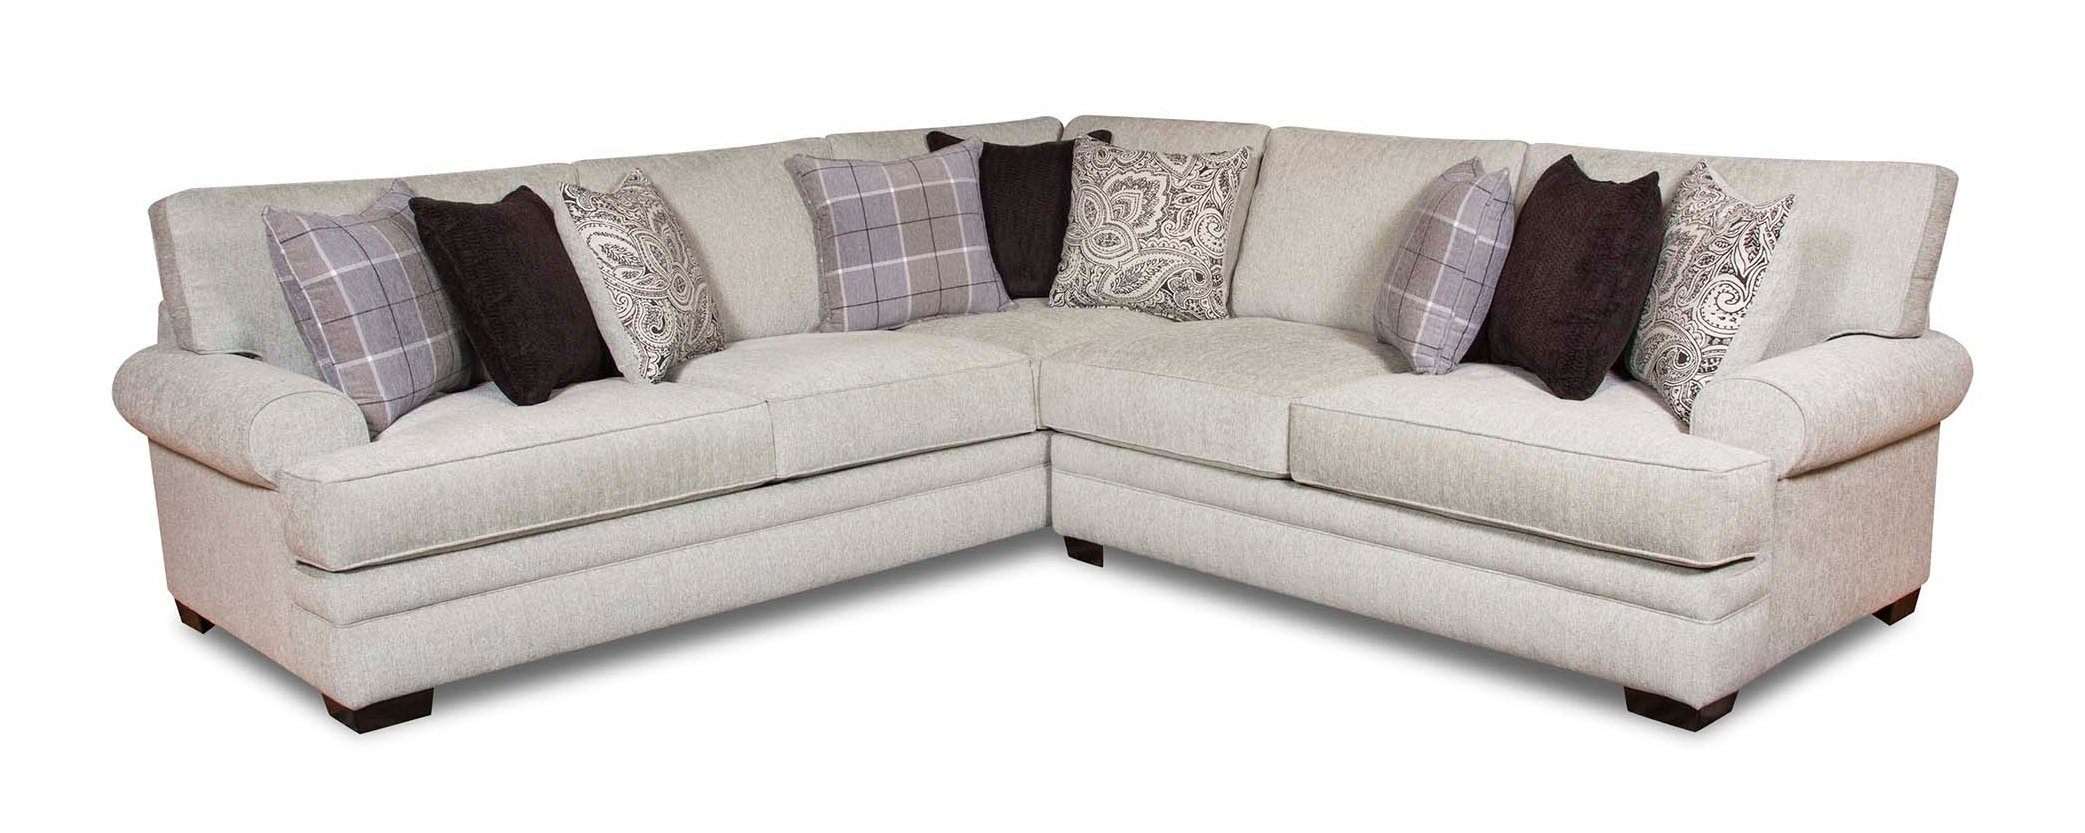 Classic White & Gray 3 Piece Sectional Sofa - Griffin | RC Willey ...